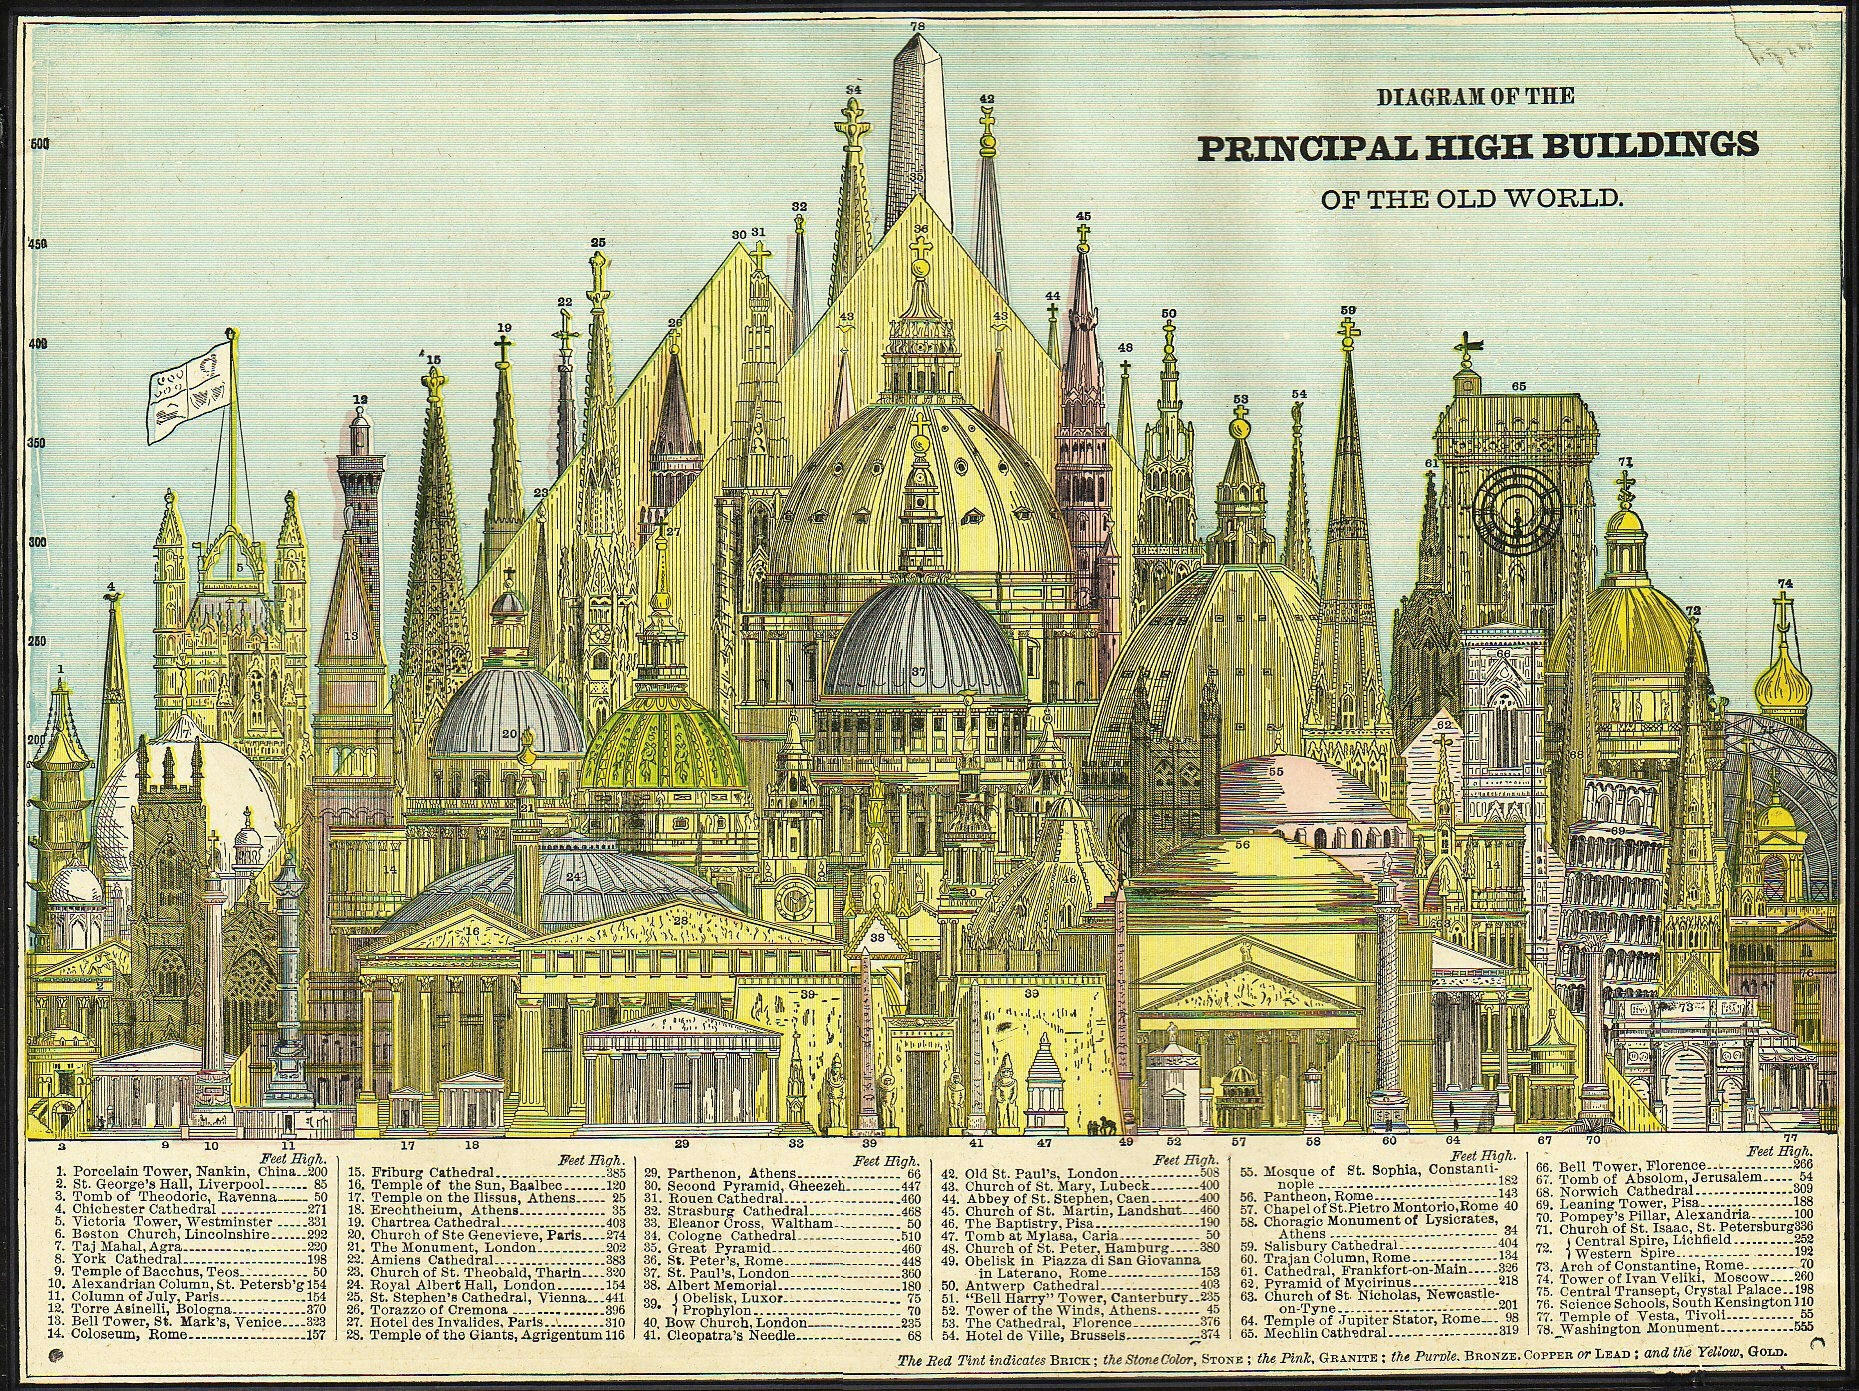 List of tallest buildings in the old world